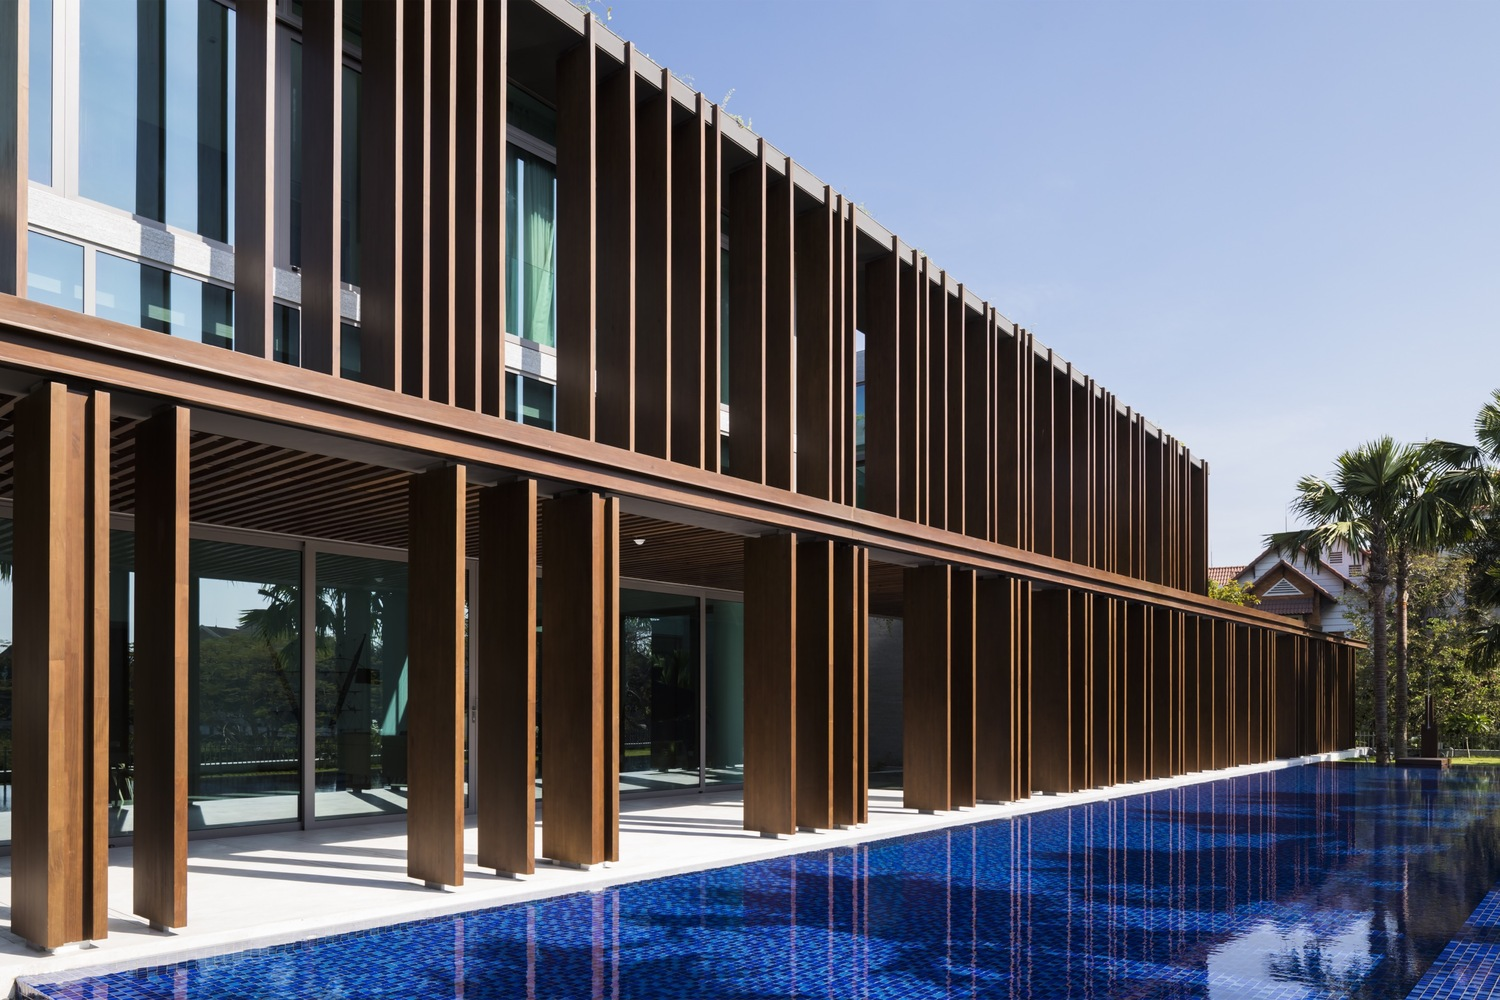 Chic Contemporary Spaces Rendered By Anh Nguyen: The Louvers House In Vietnam By MIA Design Studio Features